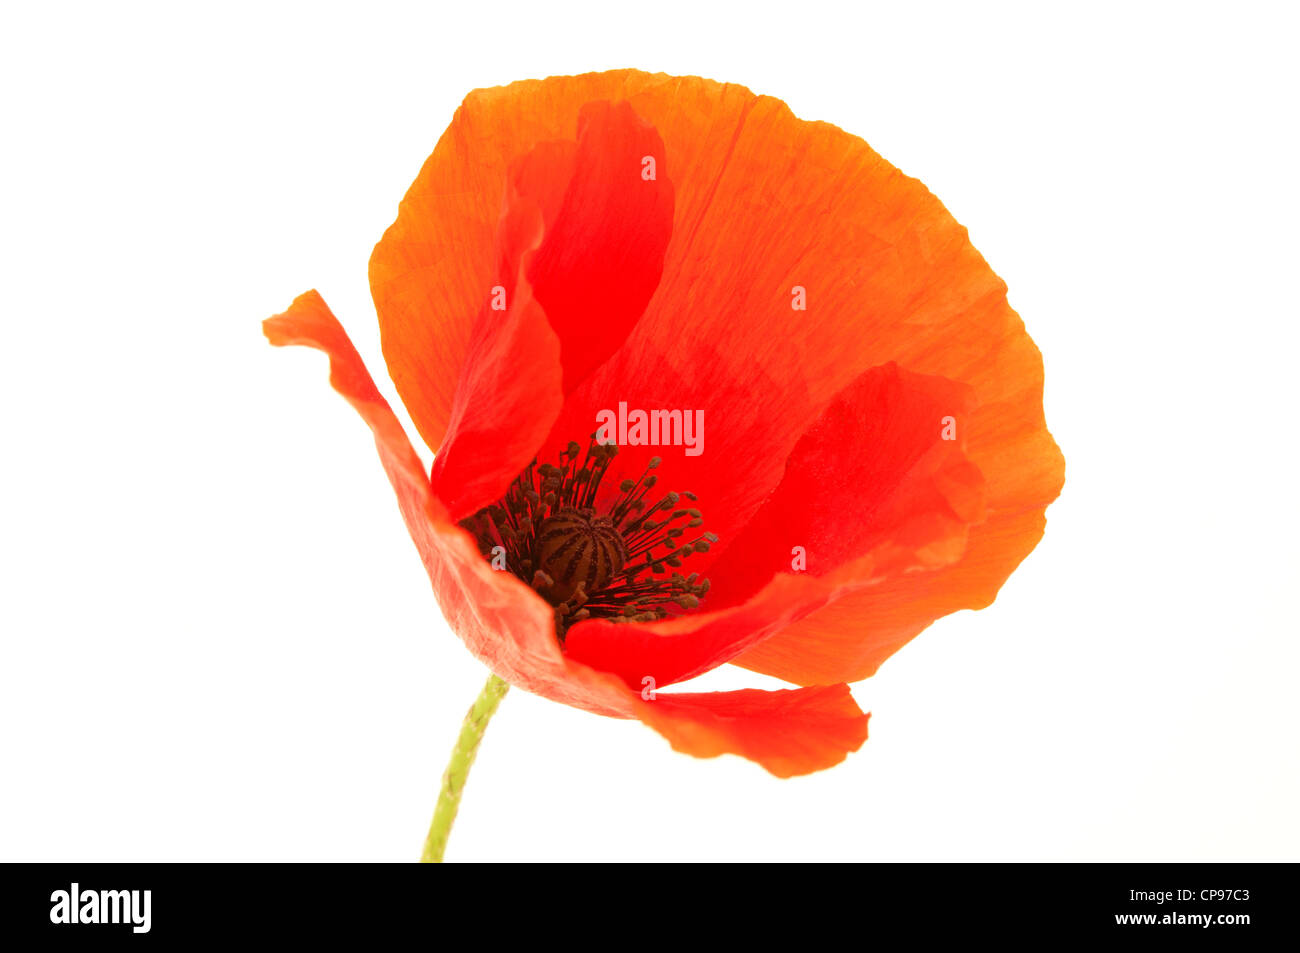 Common Poppy flower on a white background - Stock Image